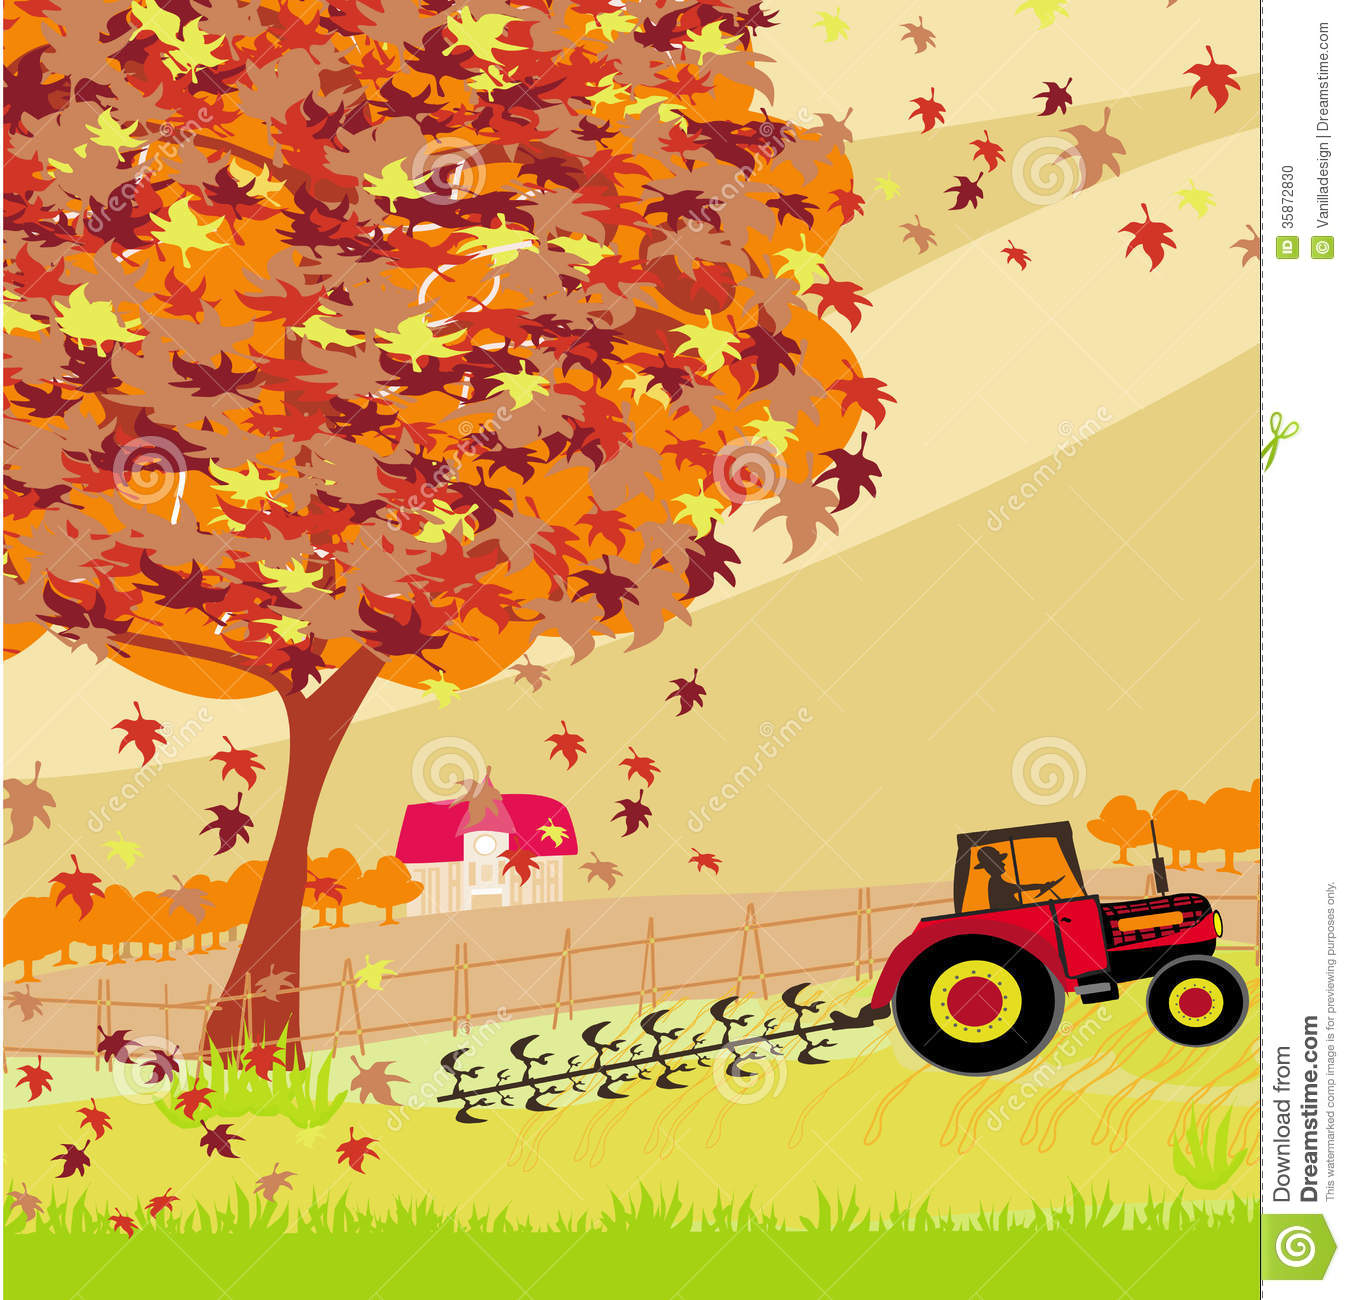 sky and trees clip art